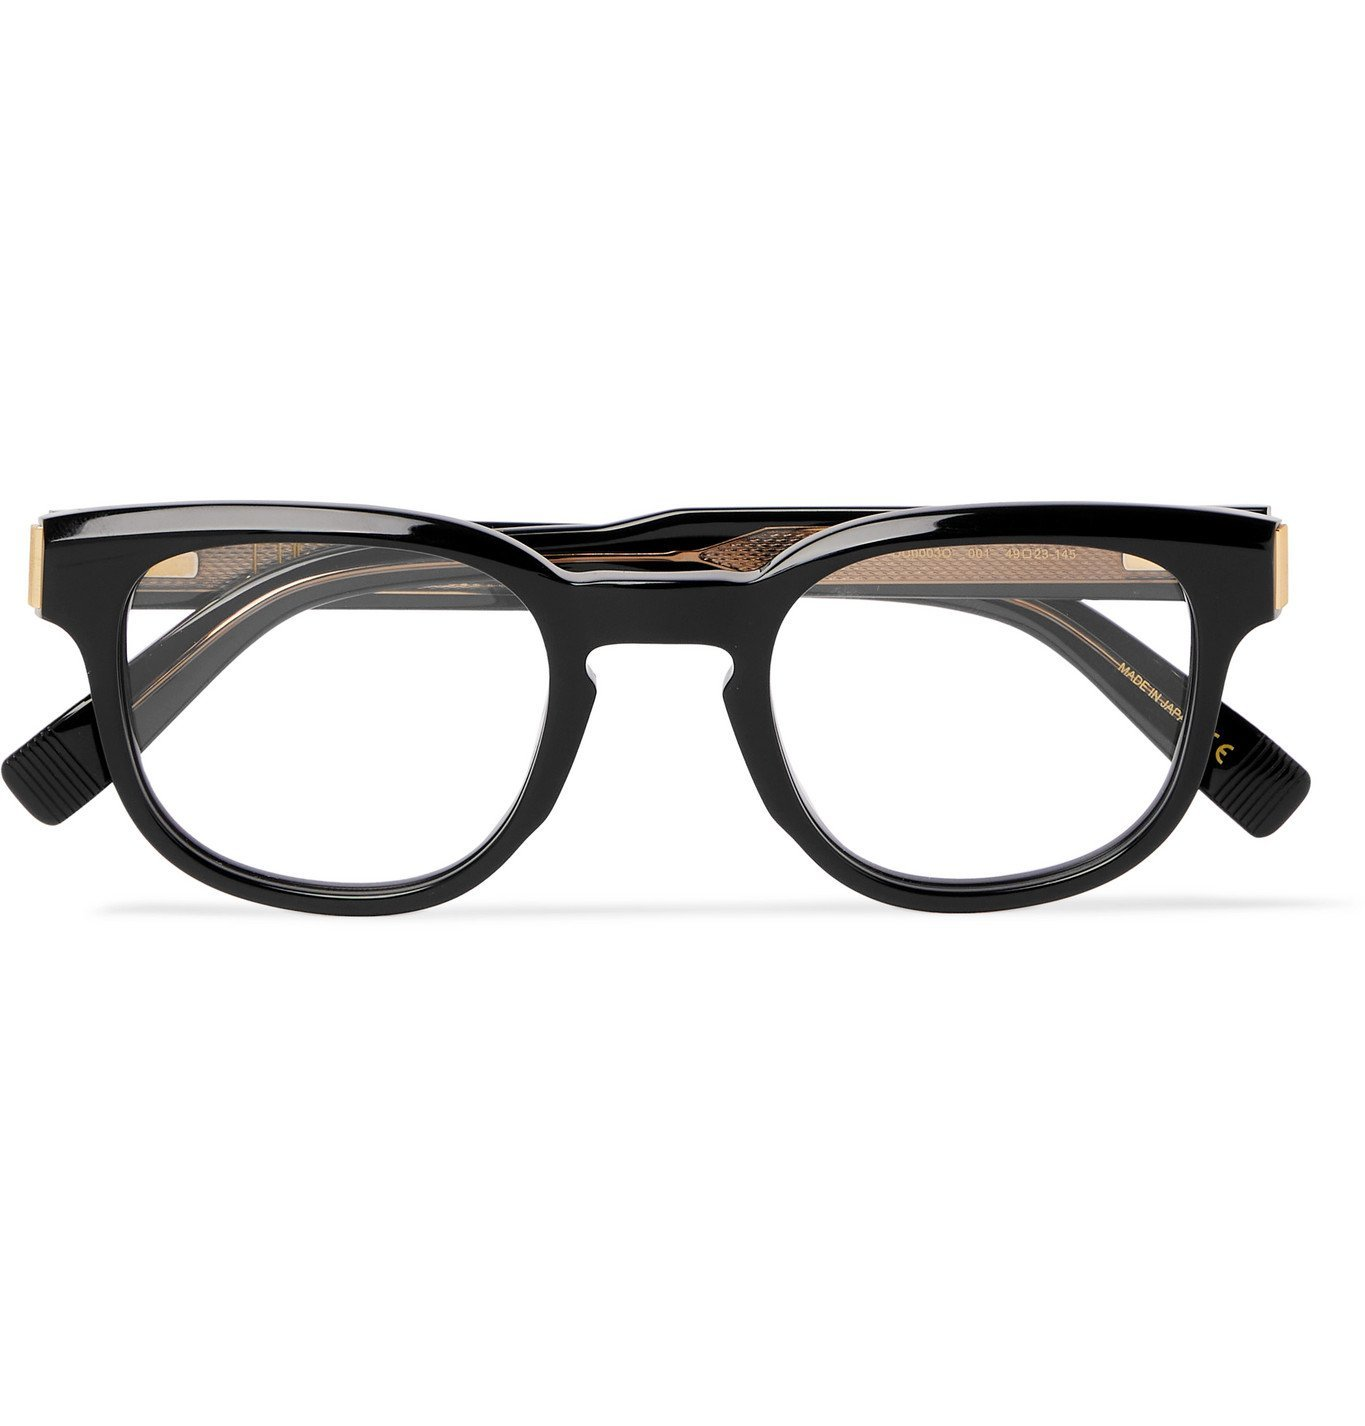 DUNHILL - Square-Frame Acetate and Gold-Tone Optical Glasses - Black